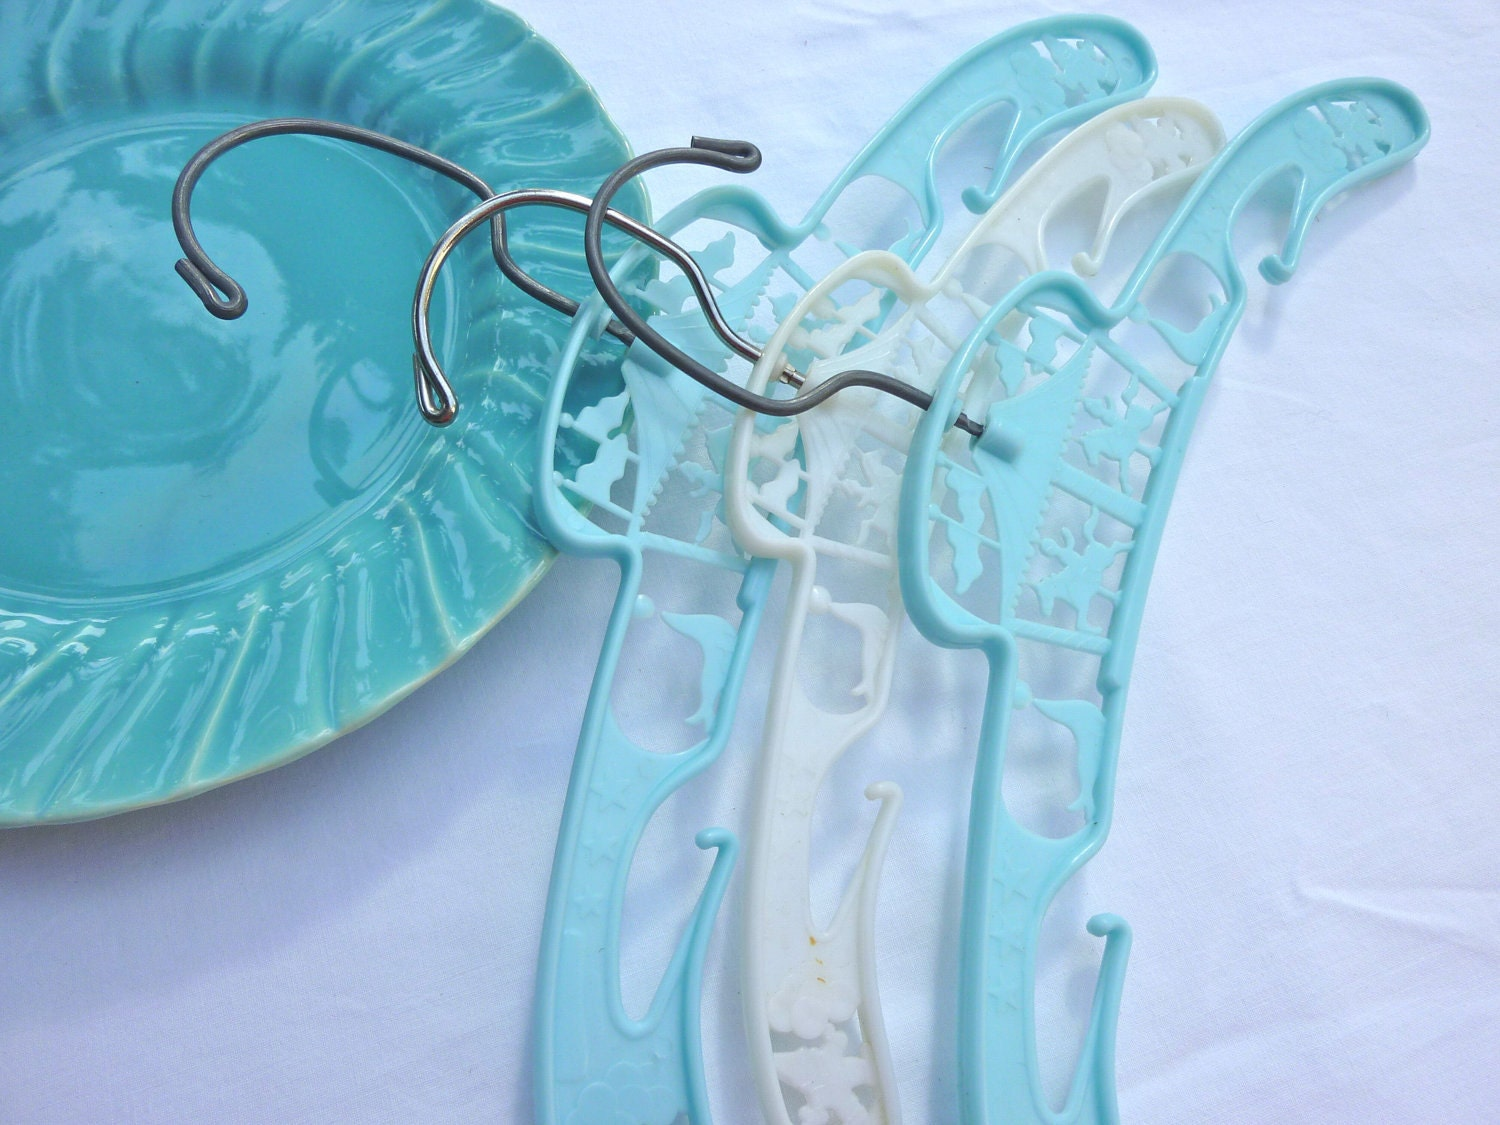 childrens clothes hangers vintage turquoise and white